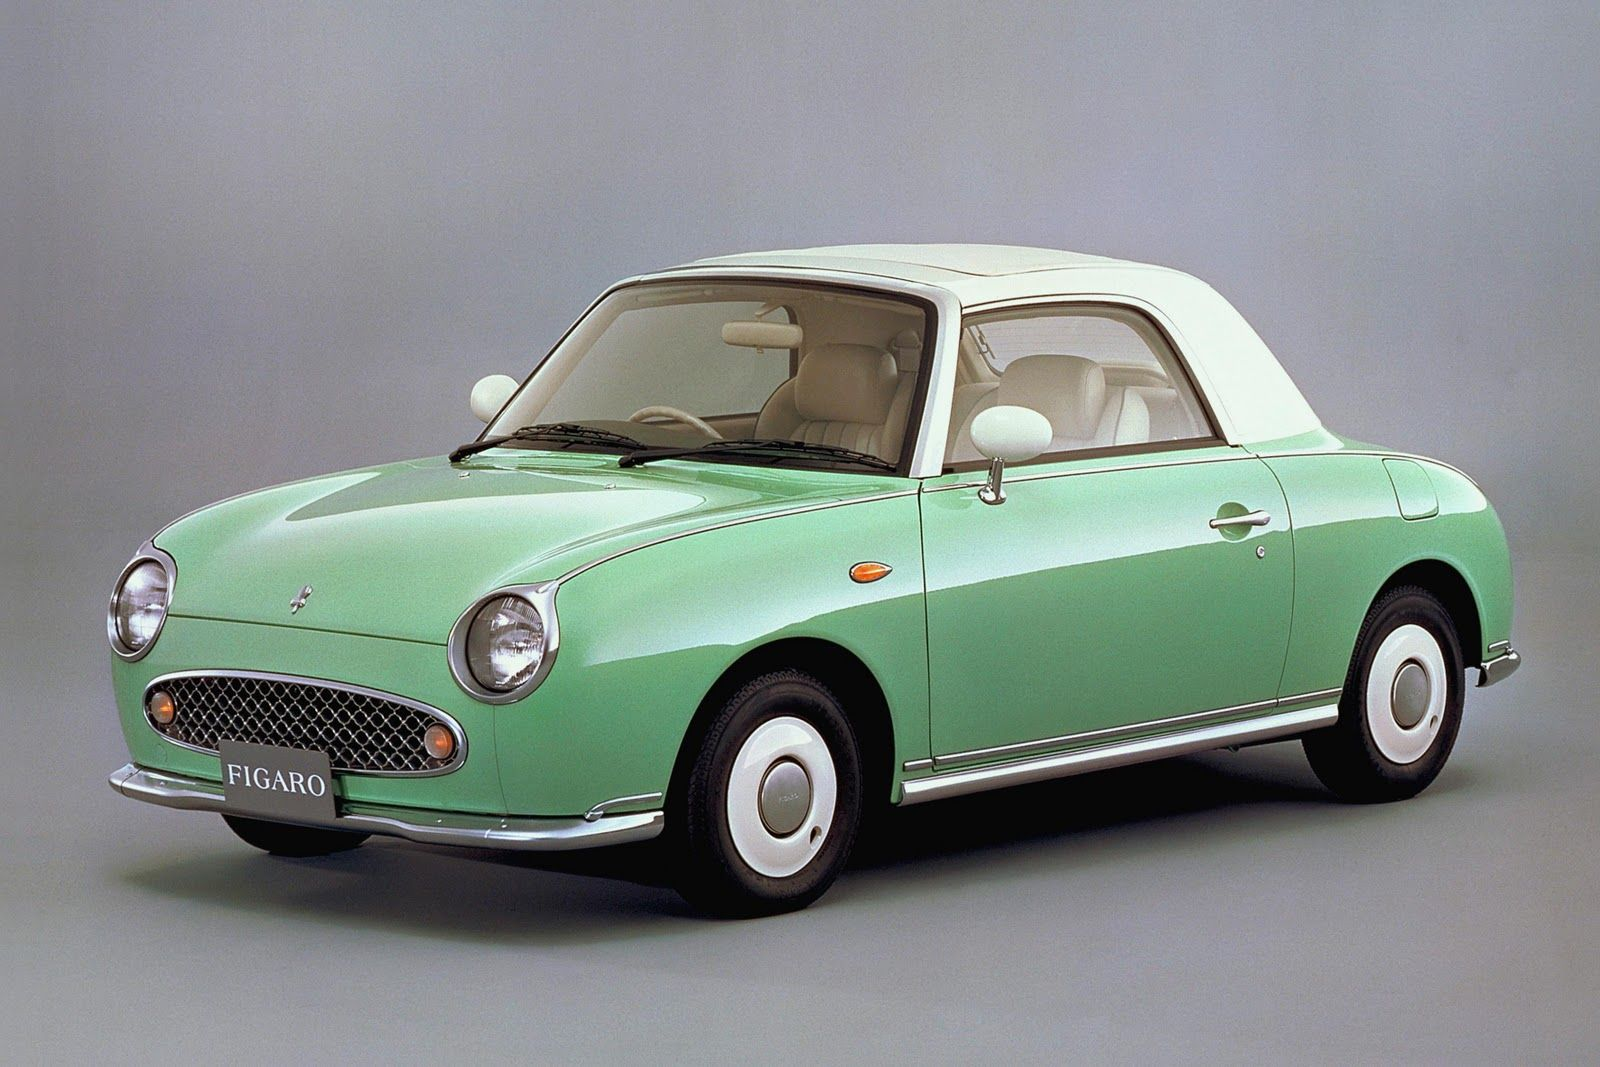 Nissan Figaro Japanese Classic Car Images And Review Luxury